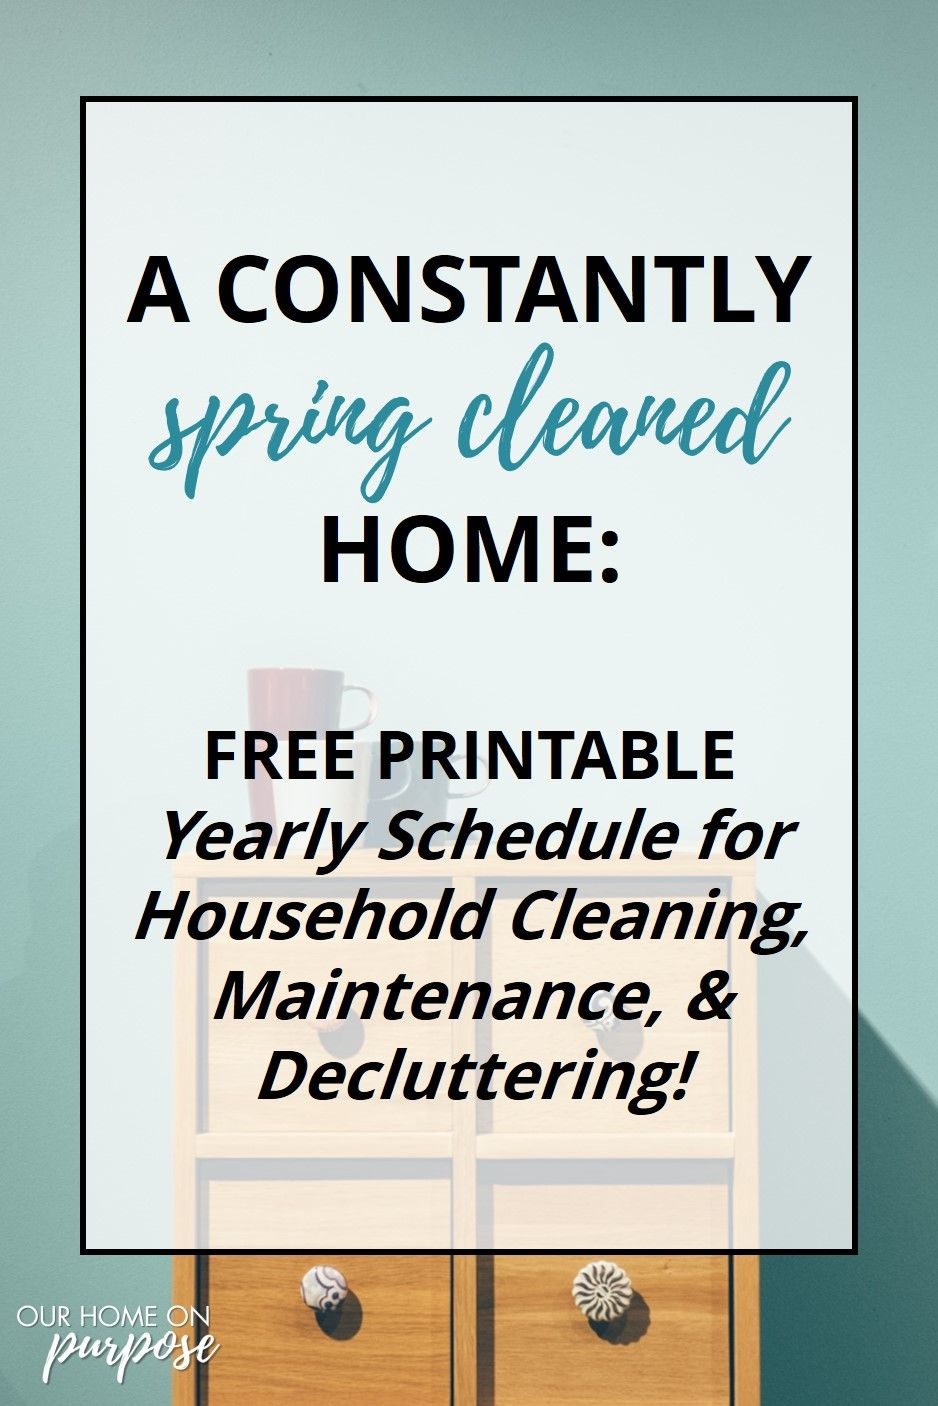 Home Cleaning and Maintenance Annual Checklist & Schedule is part of New home Printable - Ever been overwhelmed by home cleaning and maintenance  Me too  Here's my checklist and schedule FREE that helps me stay calm & keep my home clean )